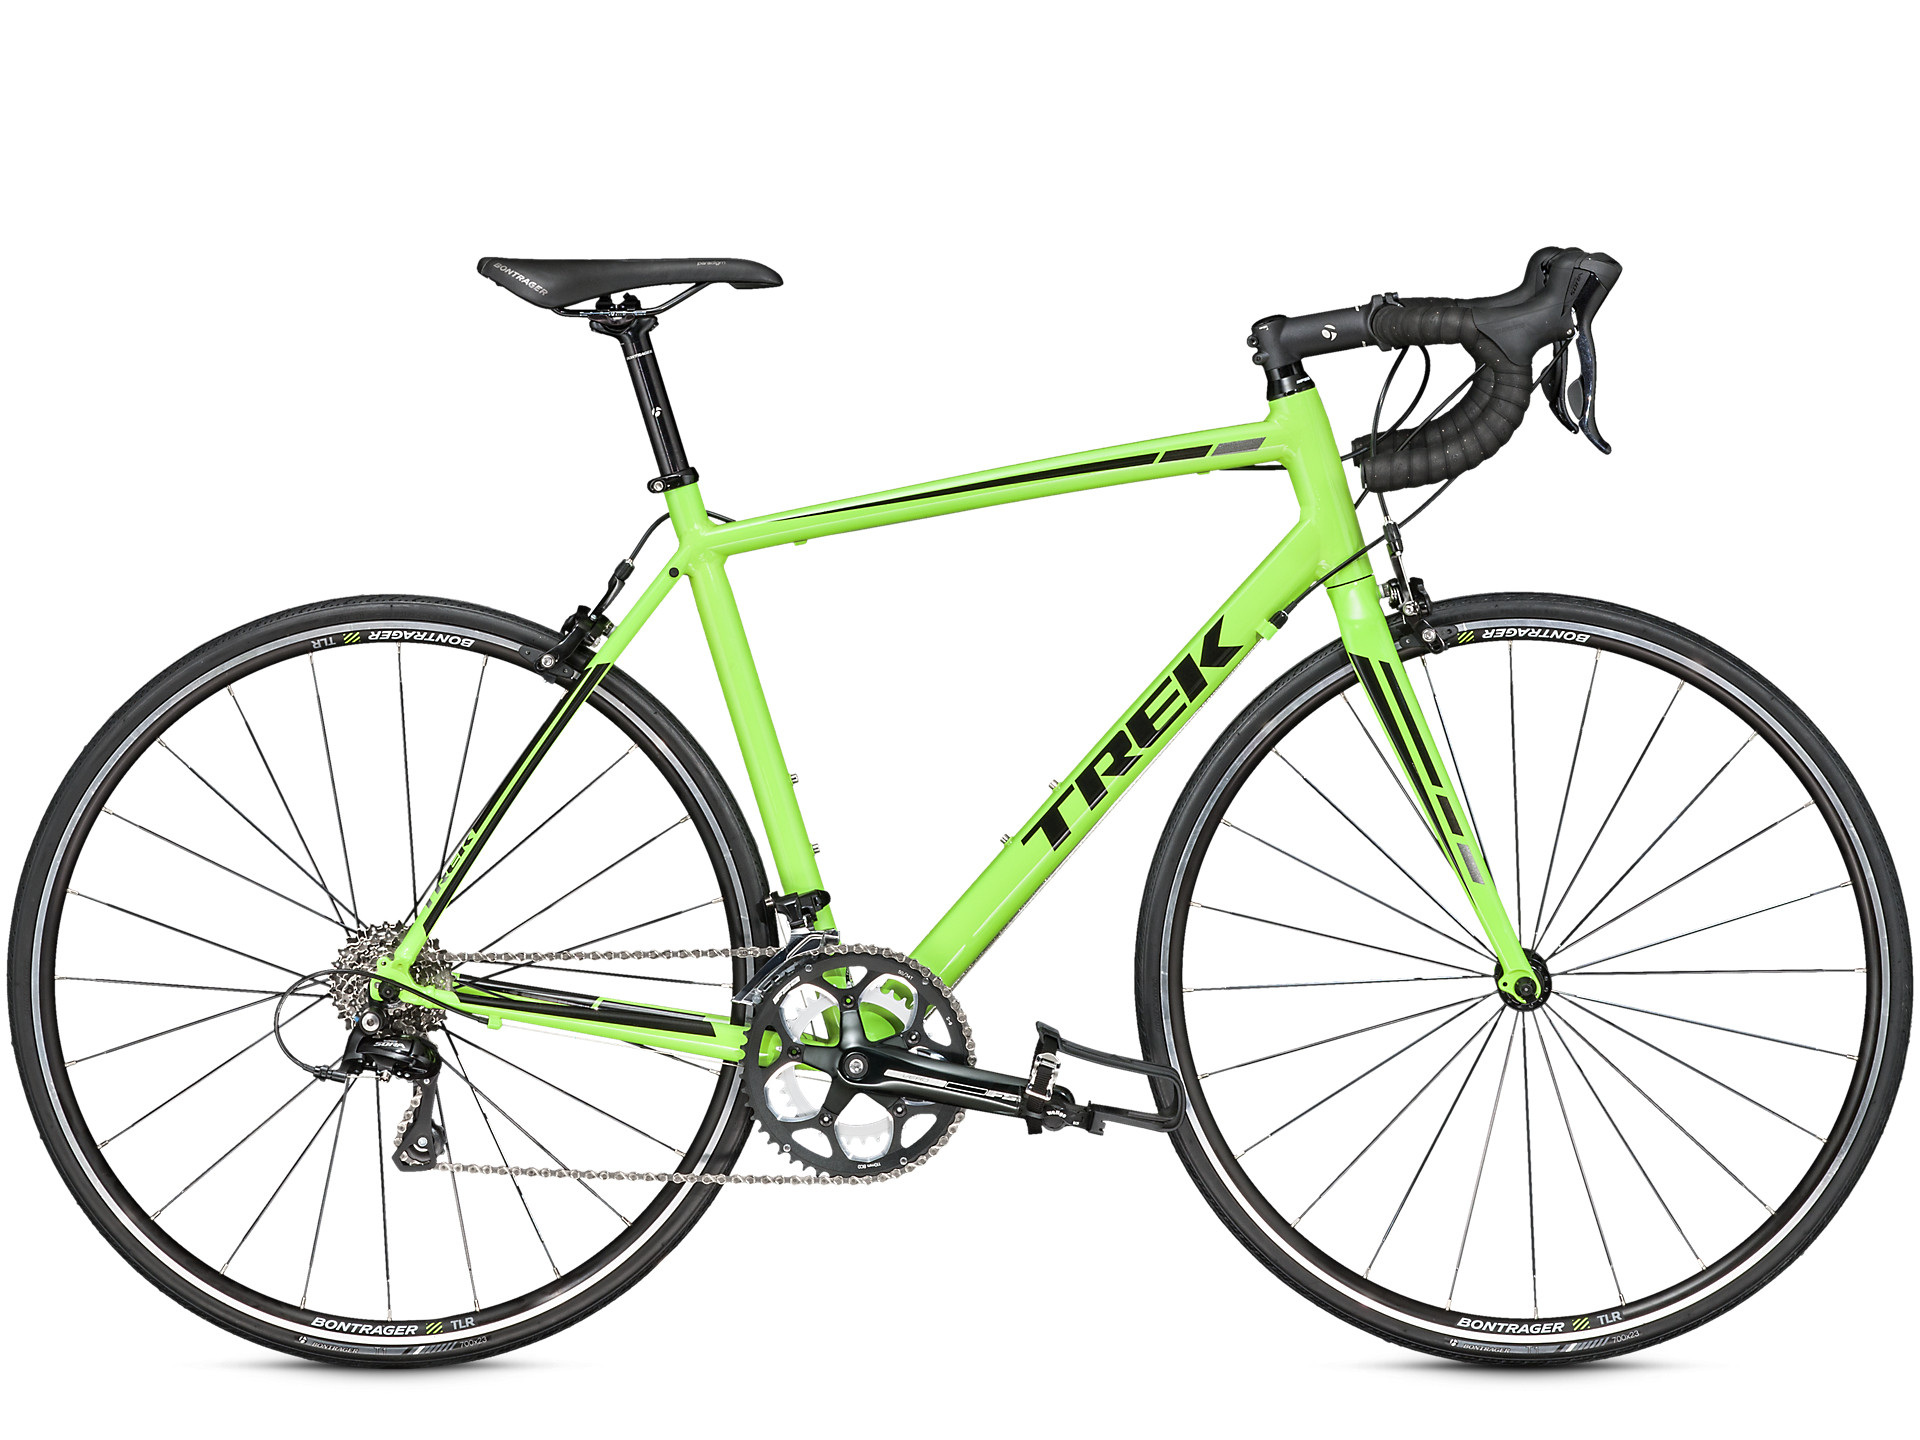 KMC Missing Link serials are optional for 11 9 10 6 speed bicycle Please select correct model based on picture and description 8 7